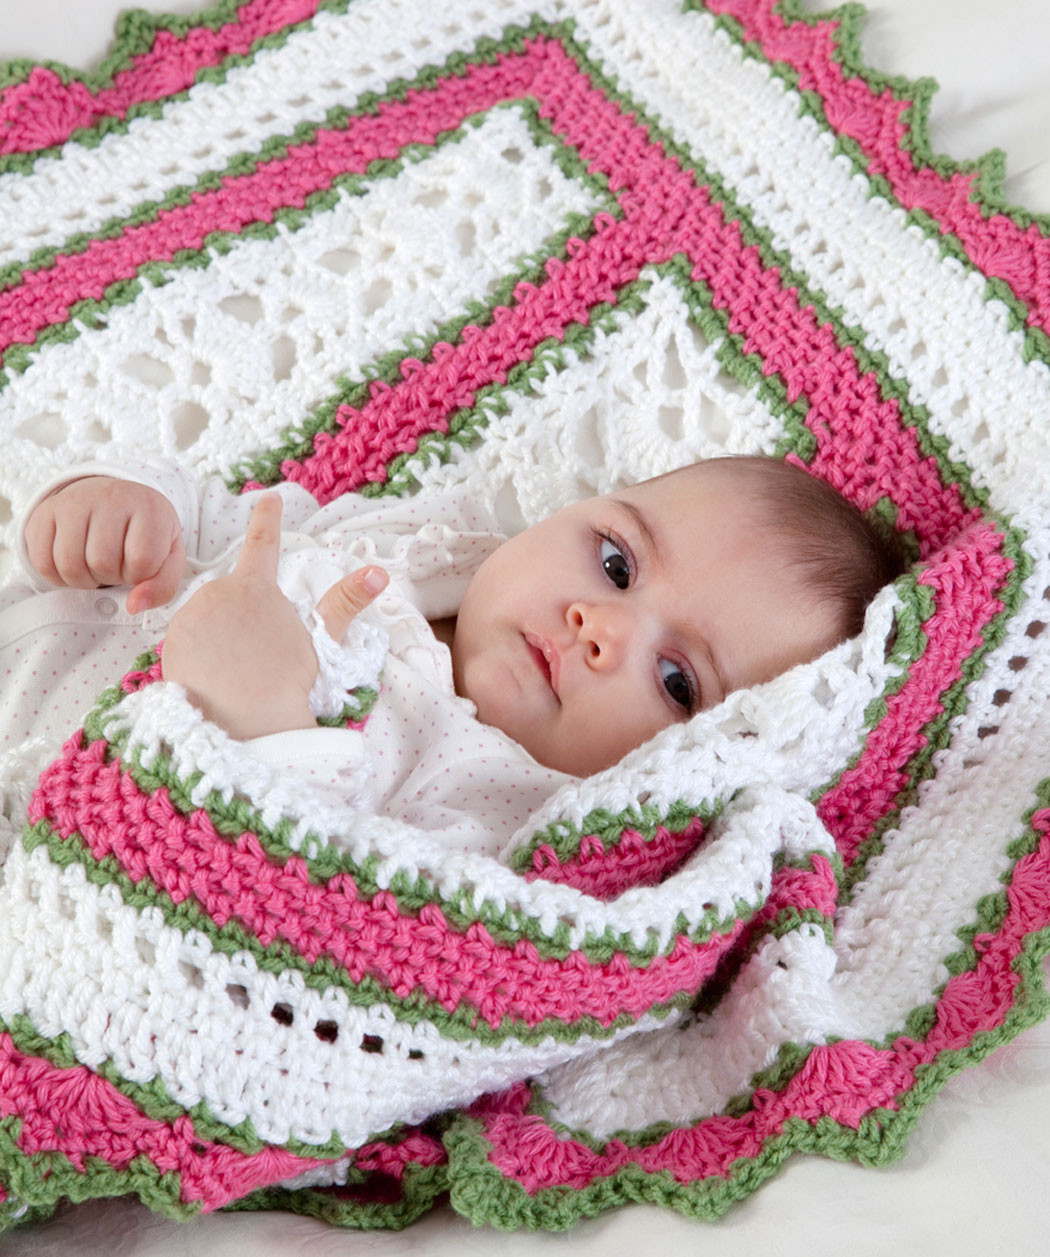 Crochet for Baby Boy Free Patterns Inspirational 10 Beautiful Baby Blanket Free Patterns Of Beautiful 40 Ideas Crochet for Baby Boy Free Patterns